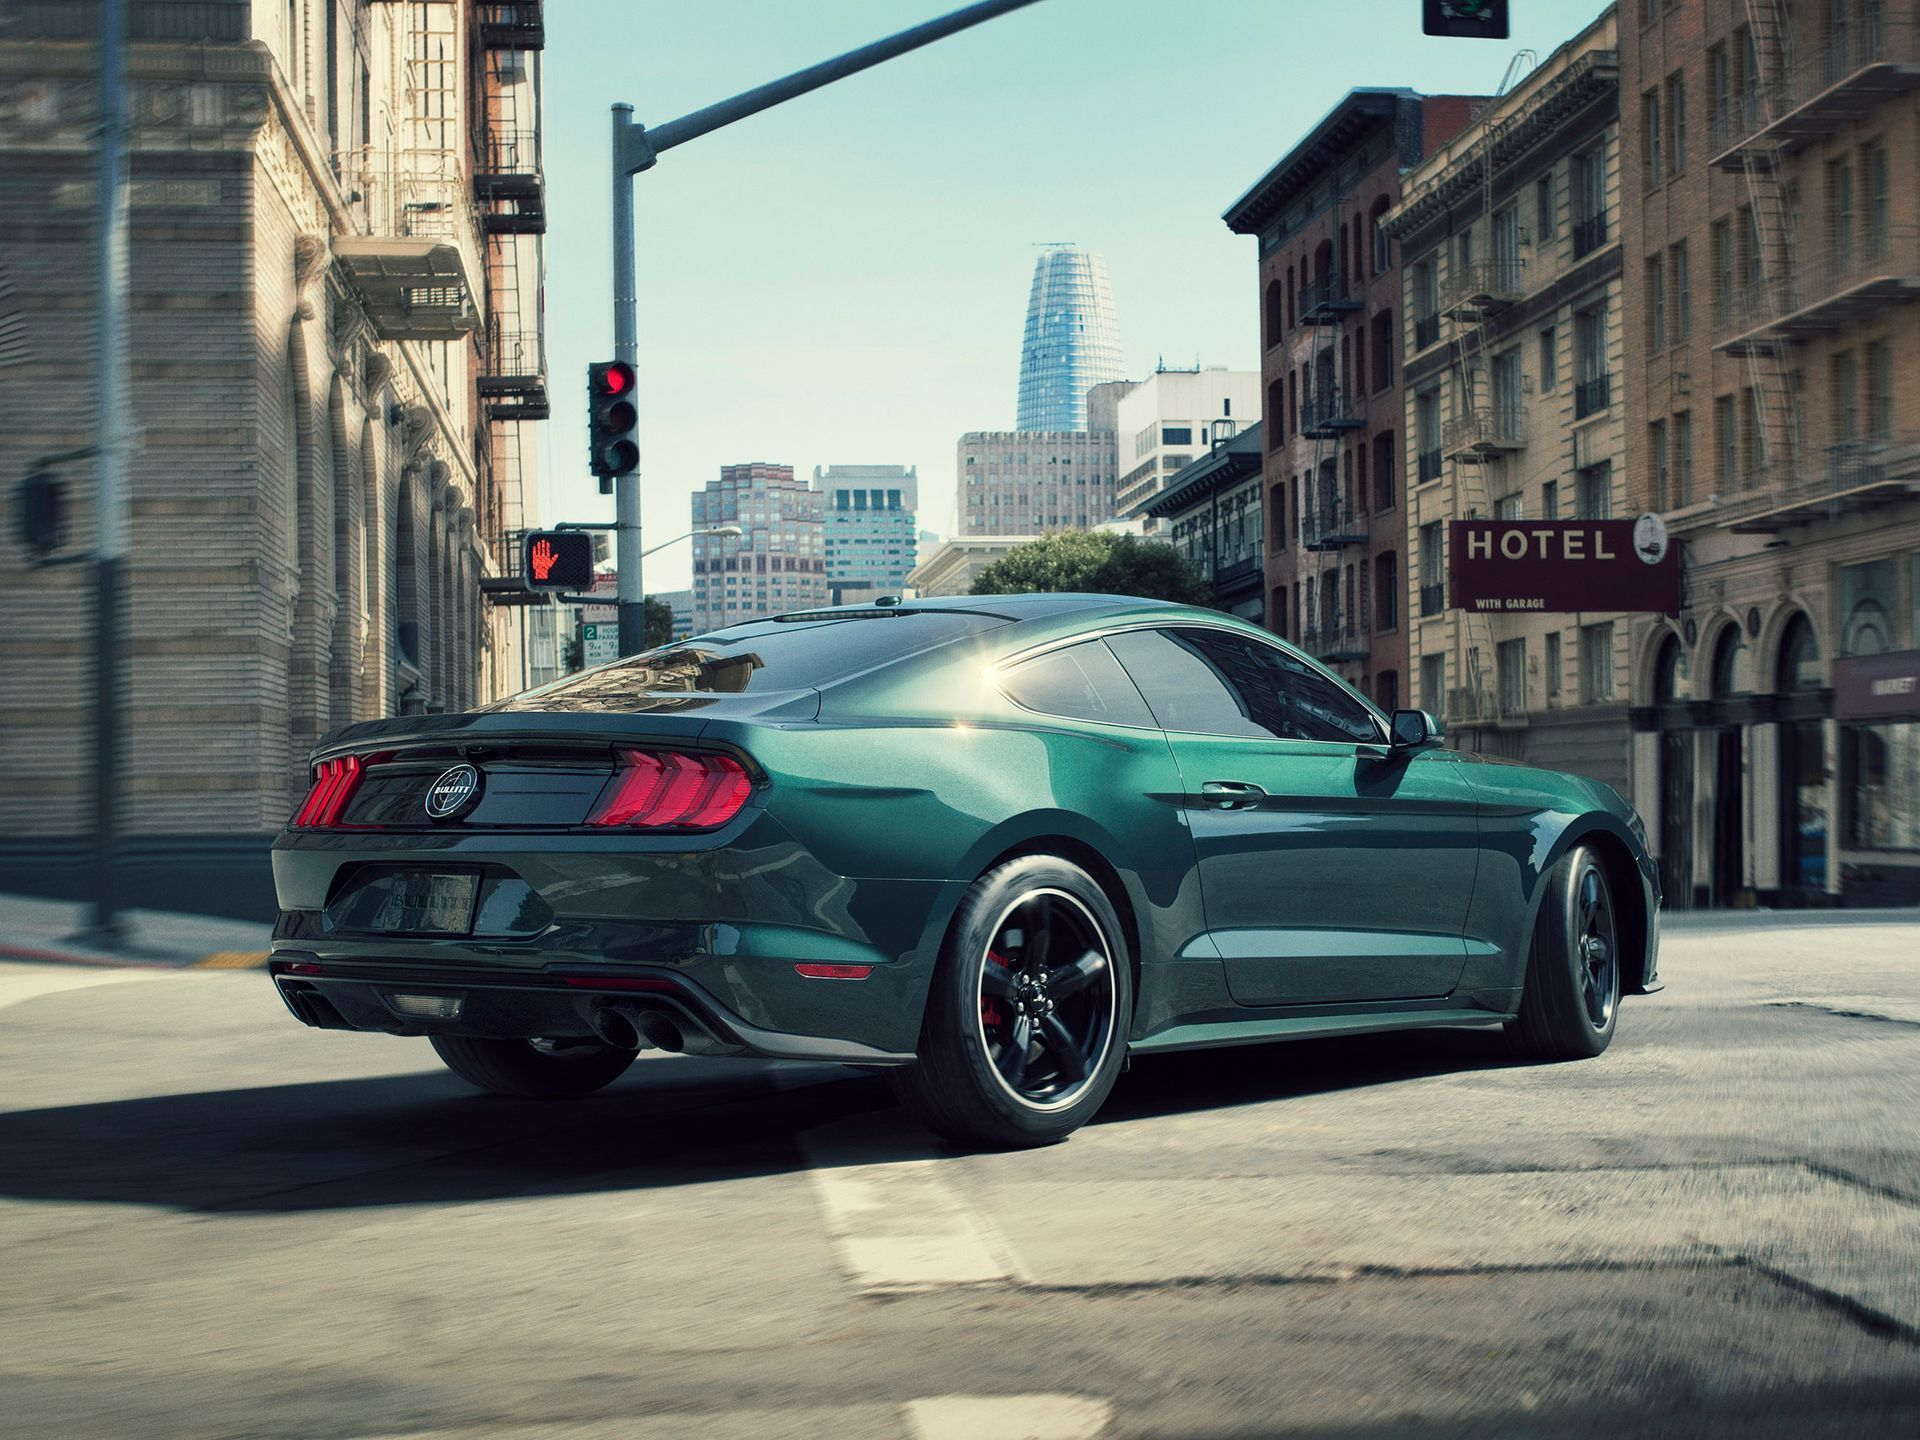 2019 2020 Ford Mustang Bullitt With Images Ford Mustang